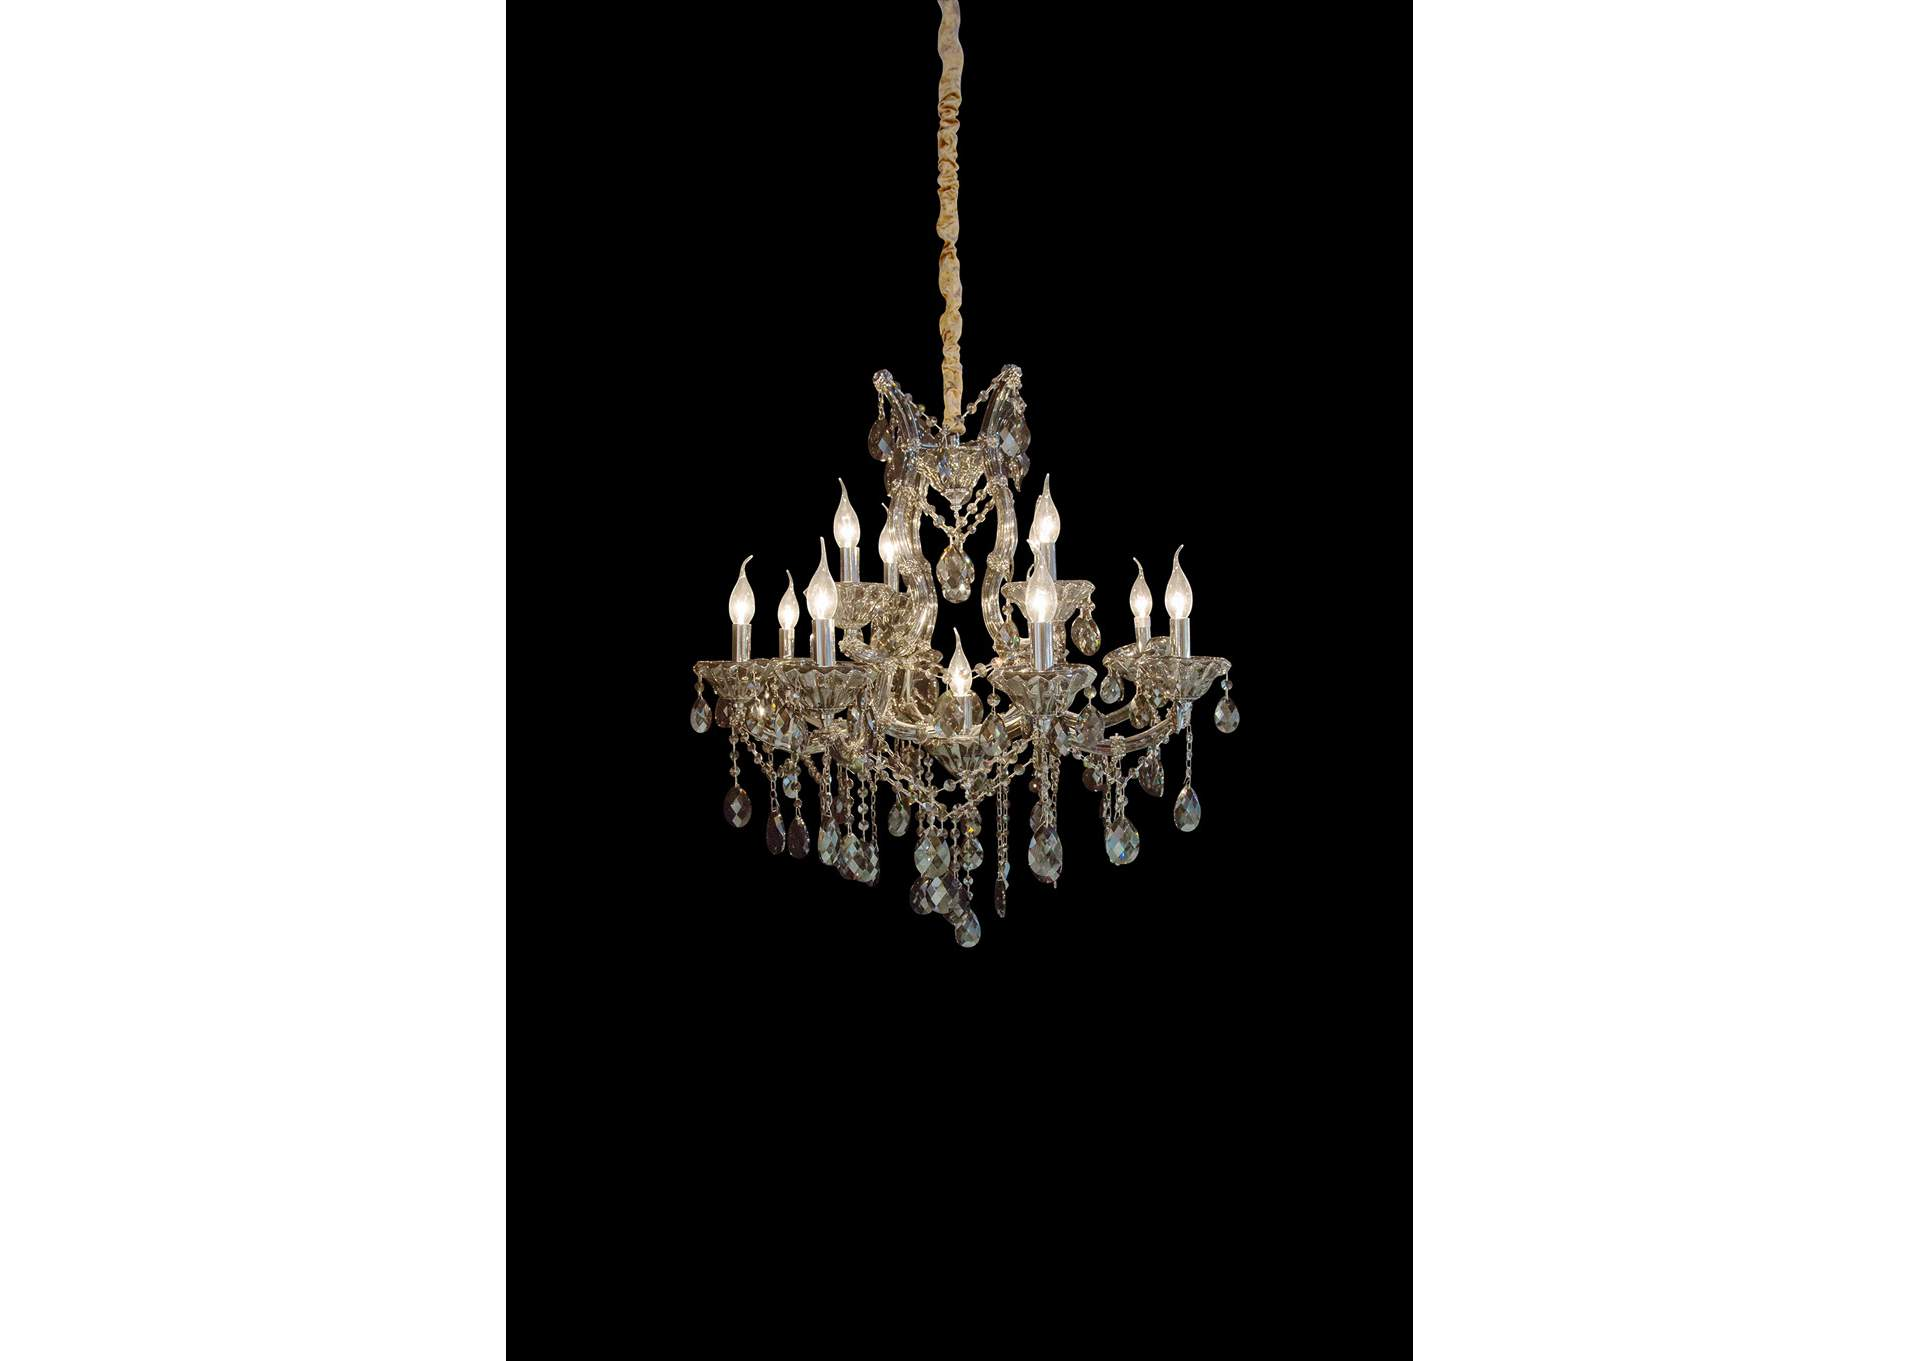 Vitoria Glass 13 Light Chandelier,AICO